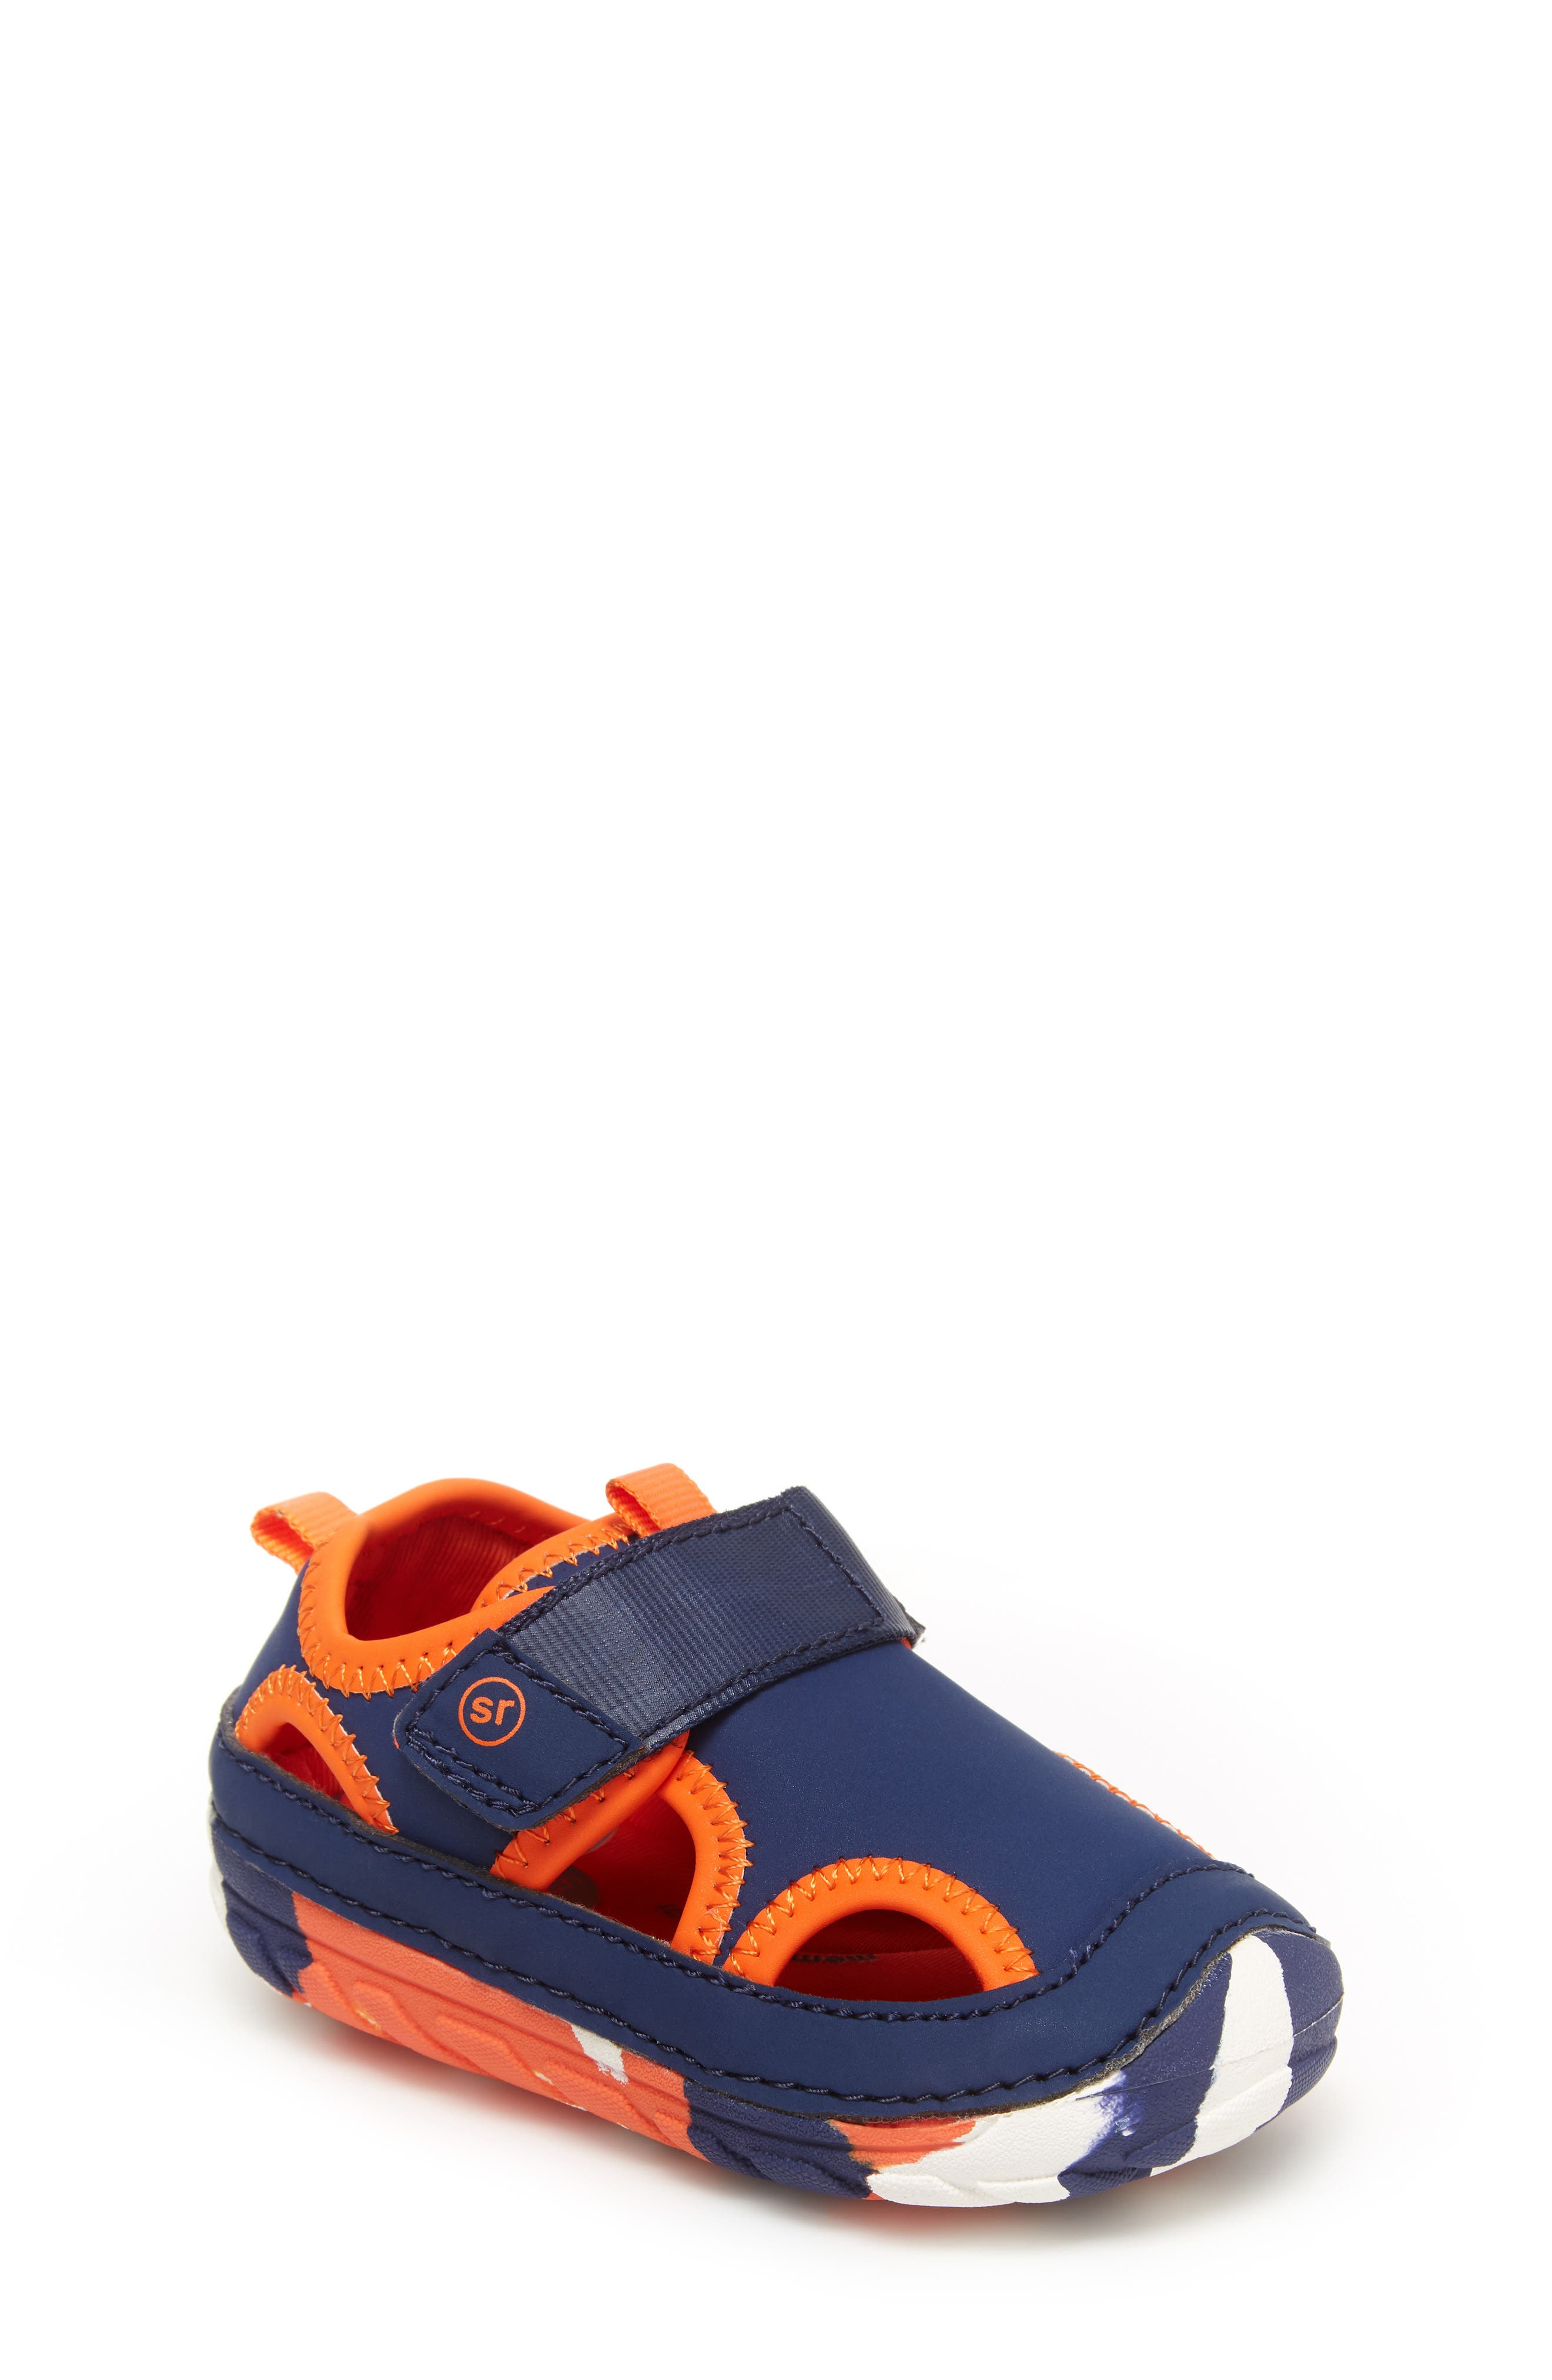 Bold color blocking and round cutouts are incredibly fun on this water-friendly shoe that encourages natural movement and supportive first steps. Style Name: Stride Rite Soft Motion Splash Water Shoe (Baby & Walker). Style Number: 5978055. Available in stores.